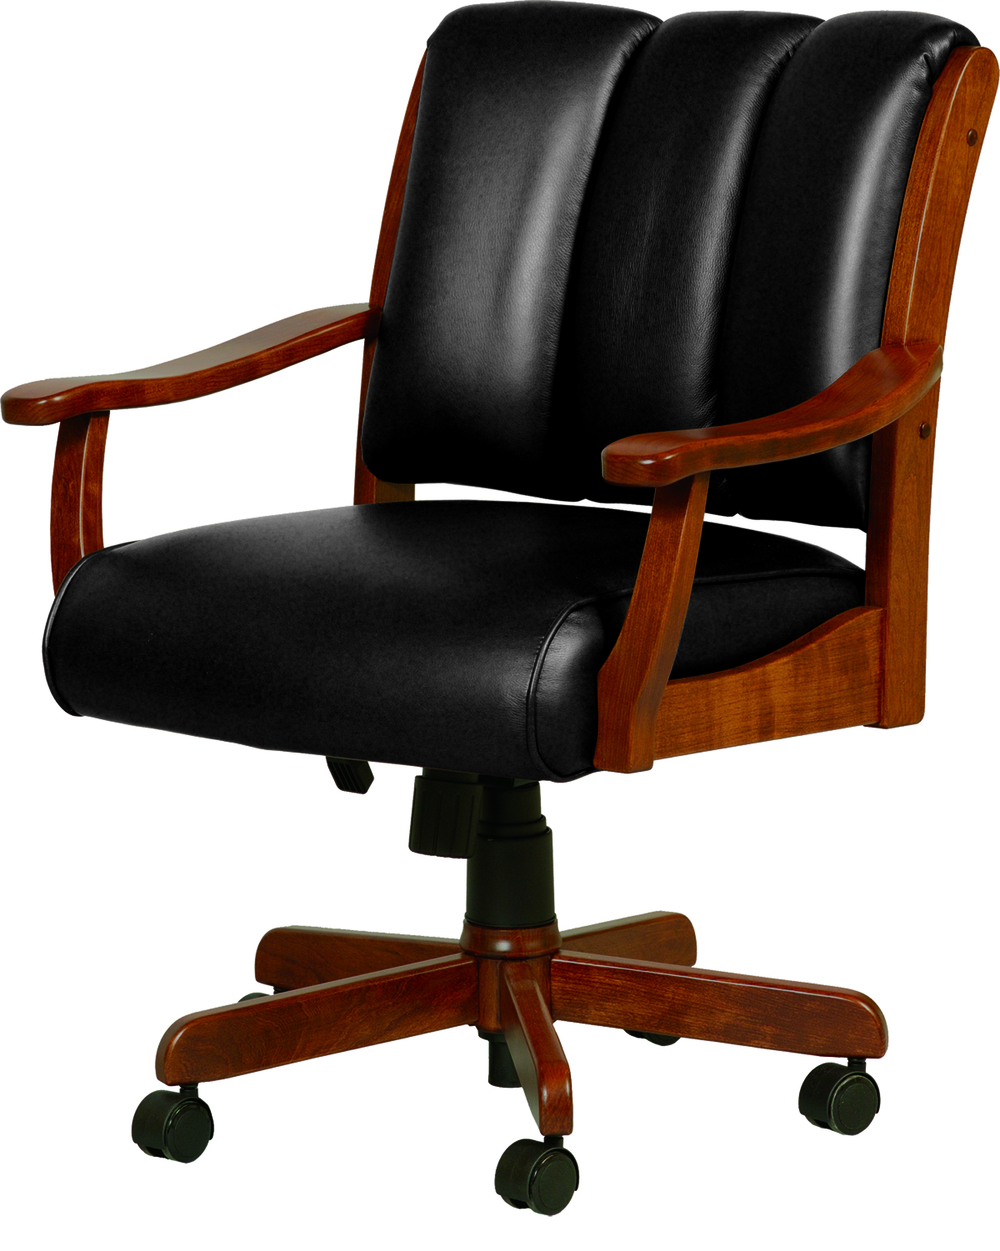 Midland Arm Chair with gas lift